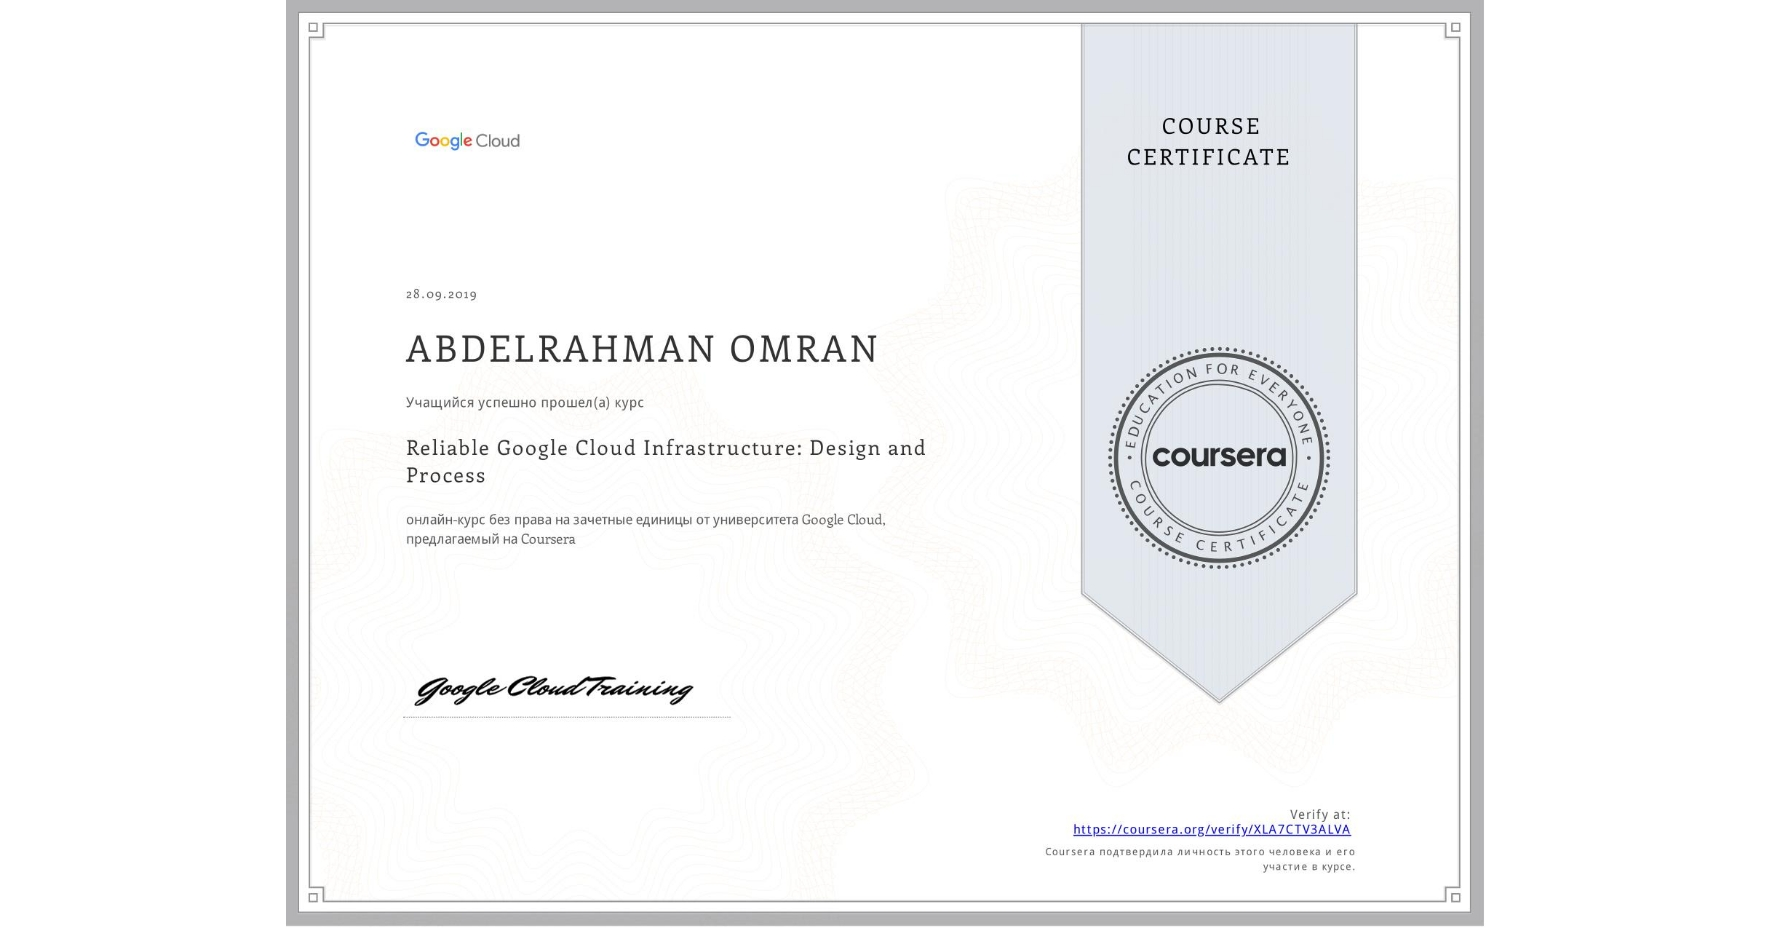 View certificate for ABDELRAHMAN OMRAN, Reliable Google Cloud Infrastructure: Design and Process, an online non-credit course authorized by Google Cloud and offered through Coursera